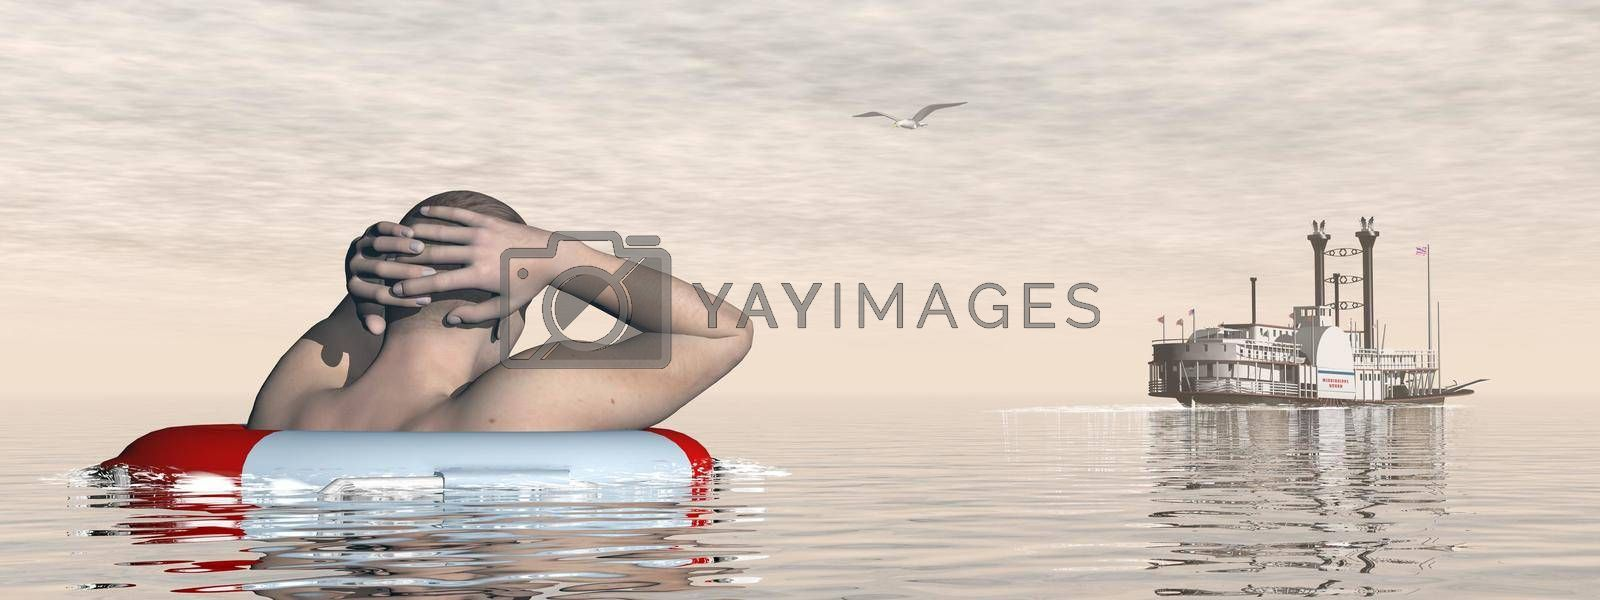 Royalty free image of Man abandoned - 3D render by Elenaphotos21